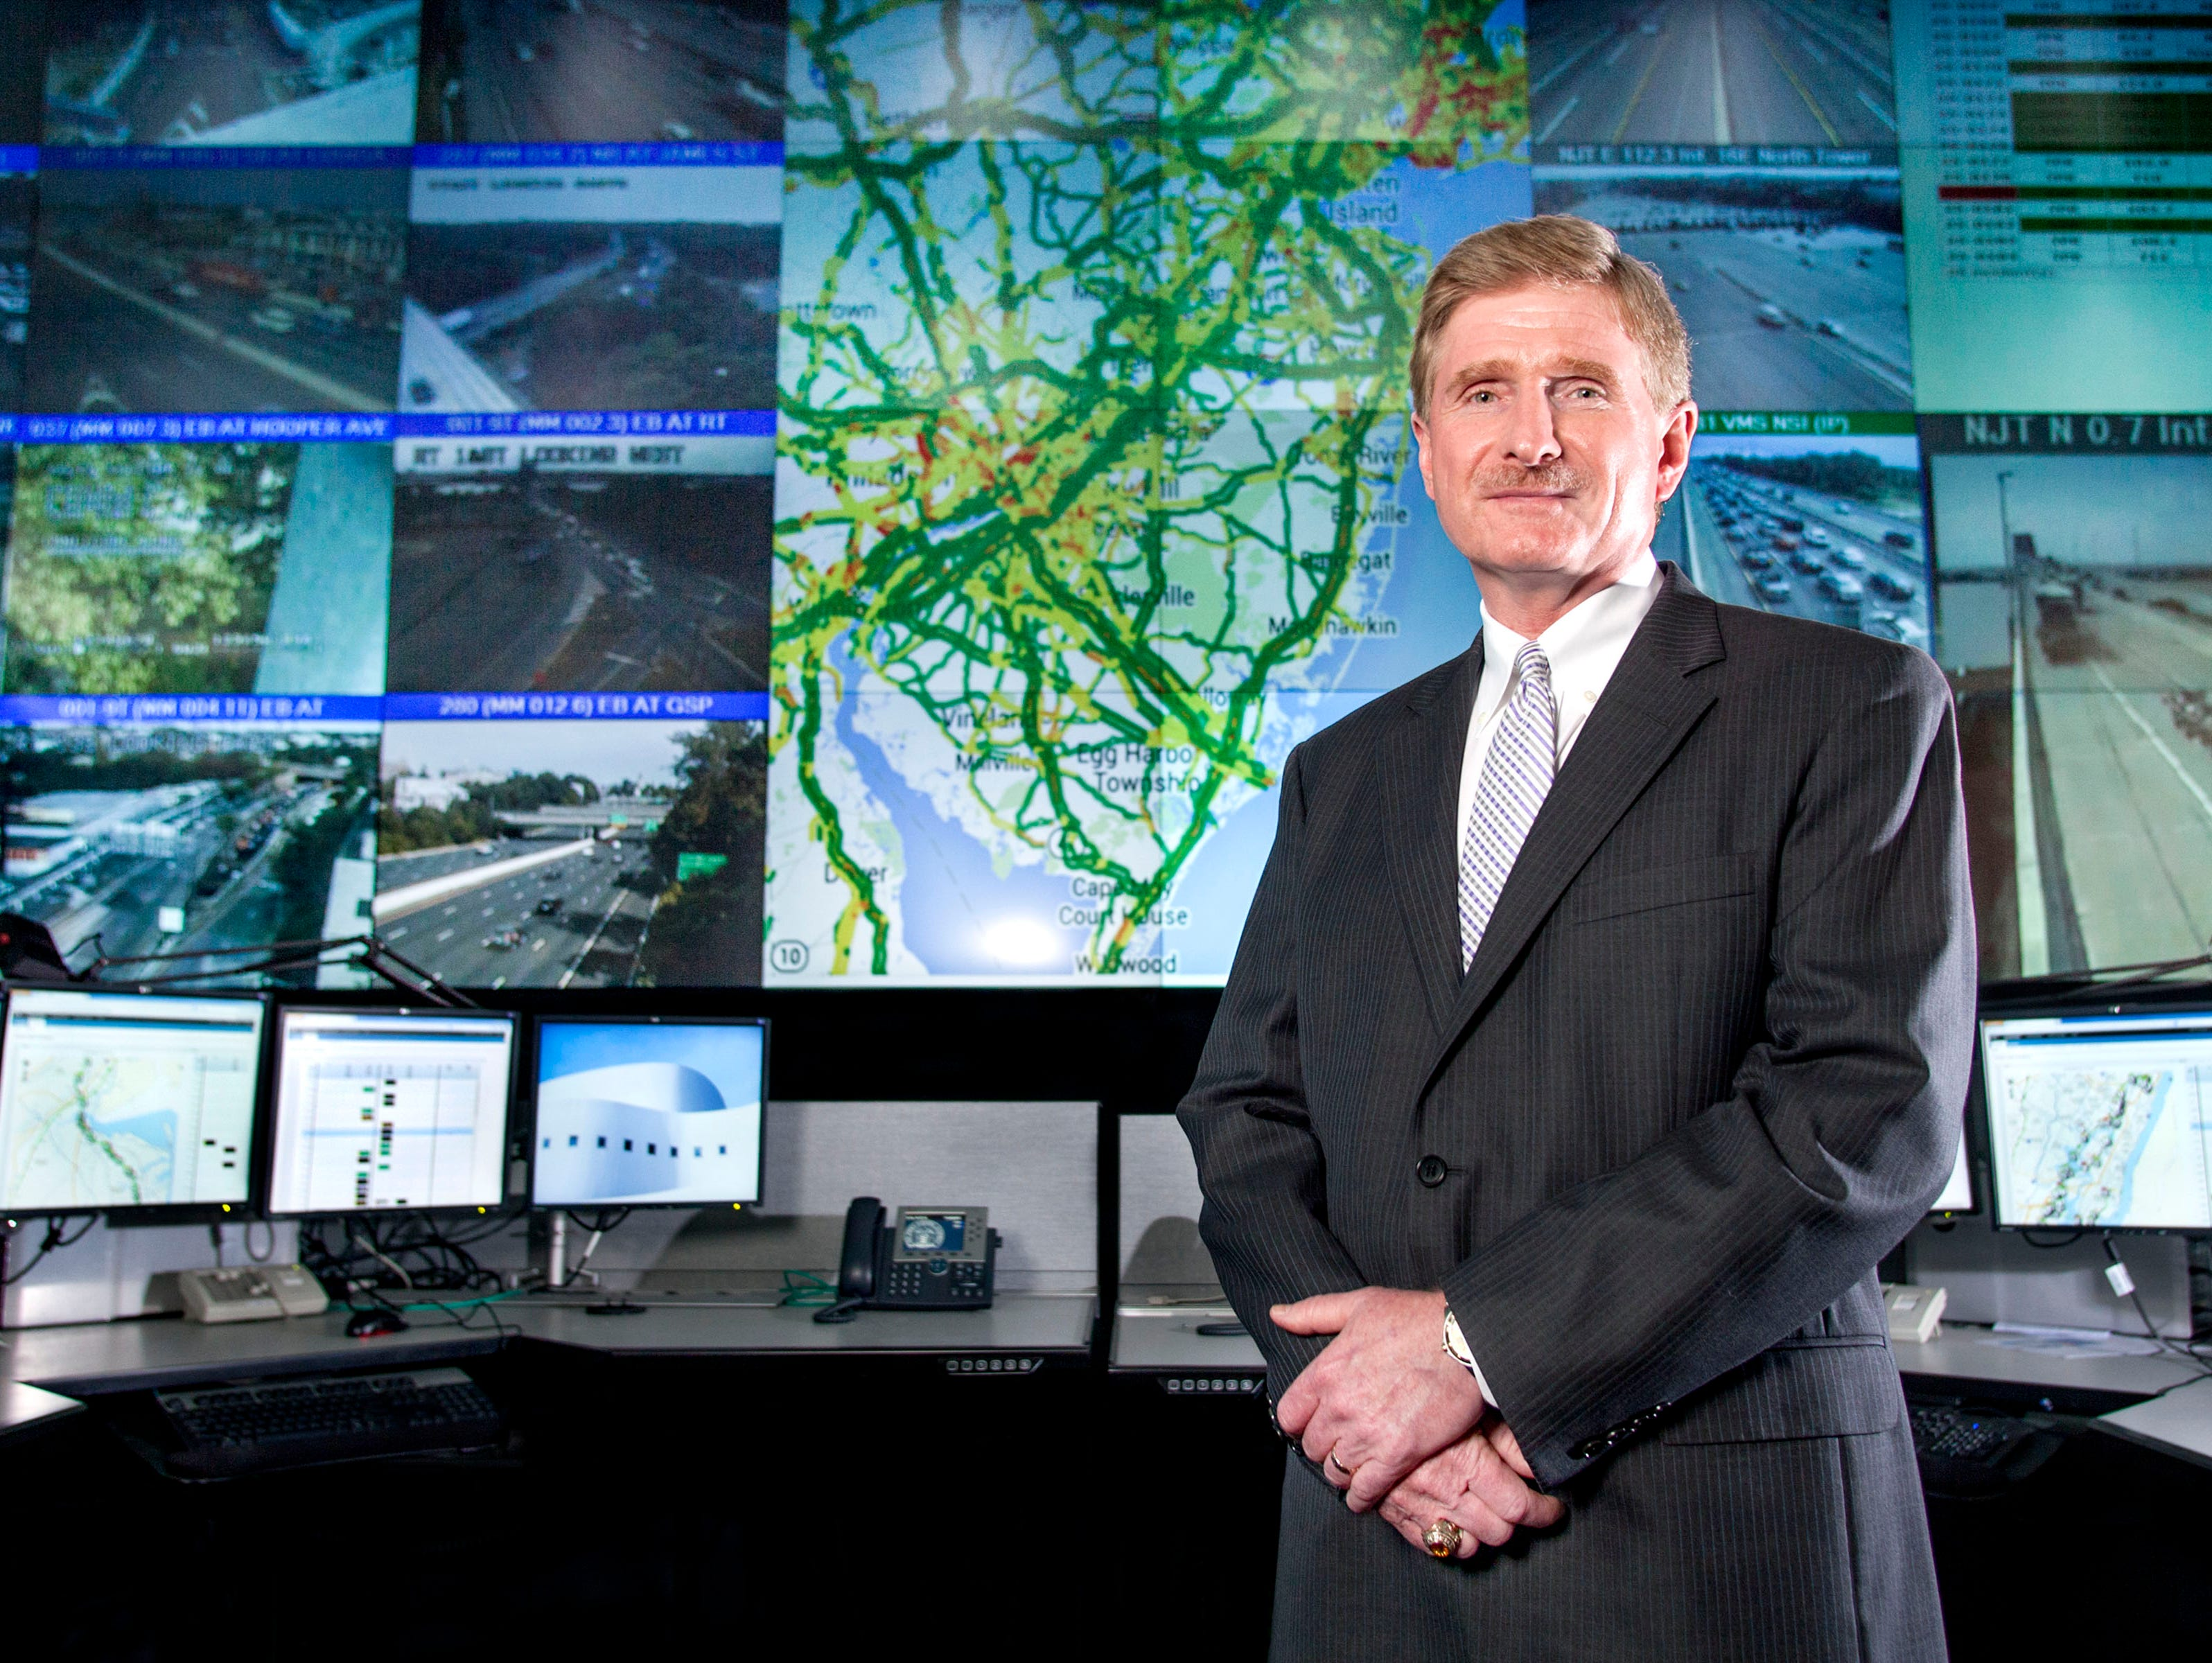 New Jersey Turnpike Authority CIO Barry Pelletteri at the New Jersey Turnpike Authority transit control center in Woodbridge, N.J., in front of an IBM transportation management solution that will help minimize congestion and improve traffic flow for